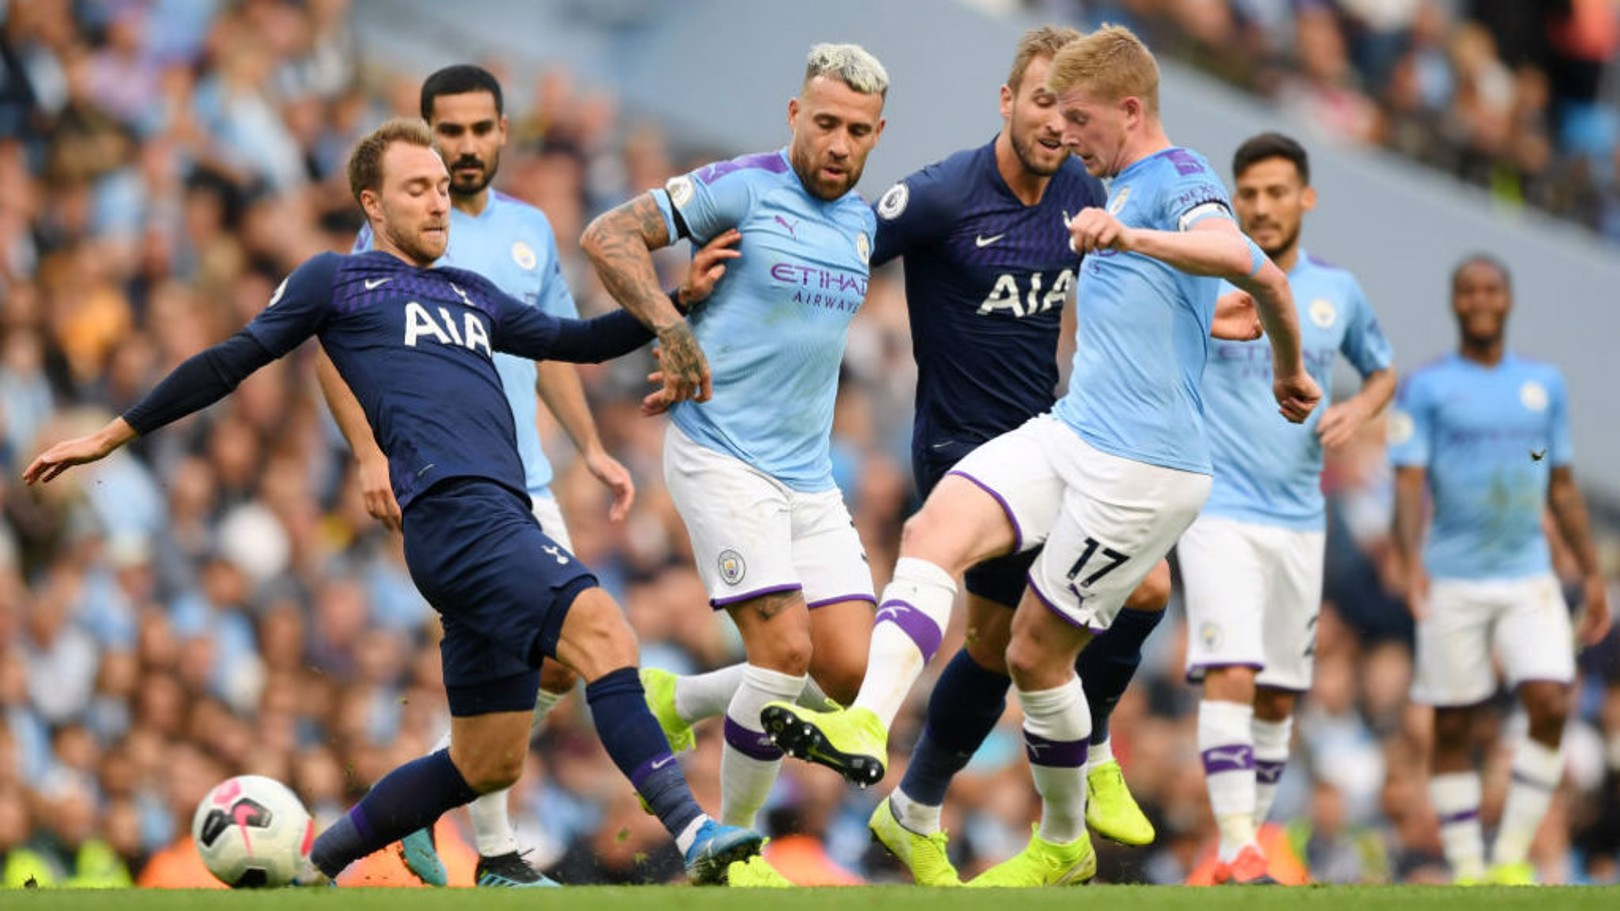 City v Tottenham: All the key stats